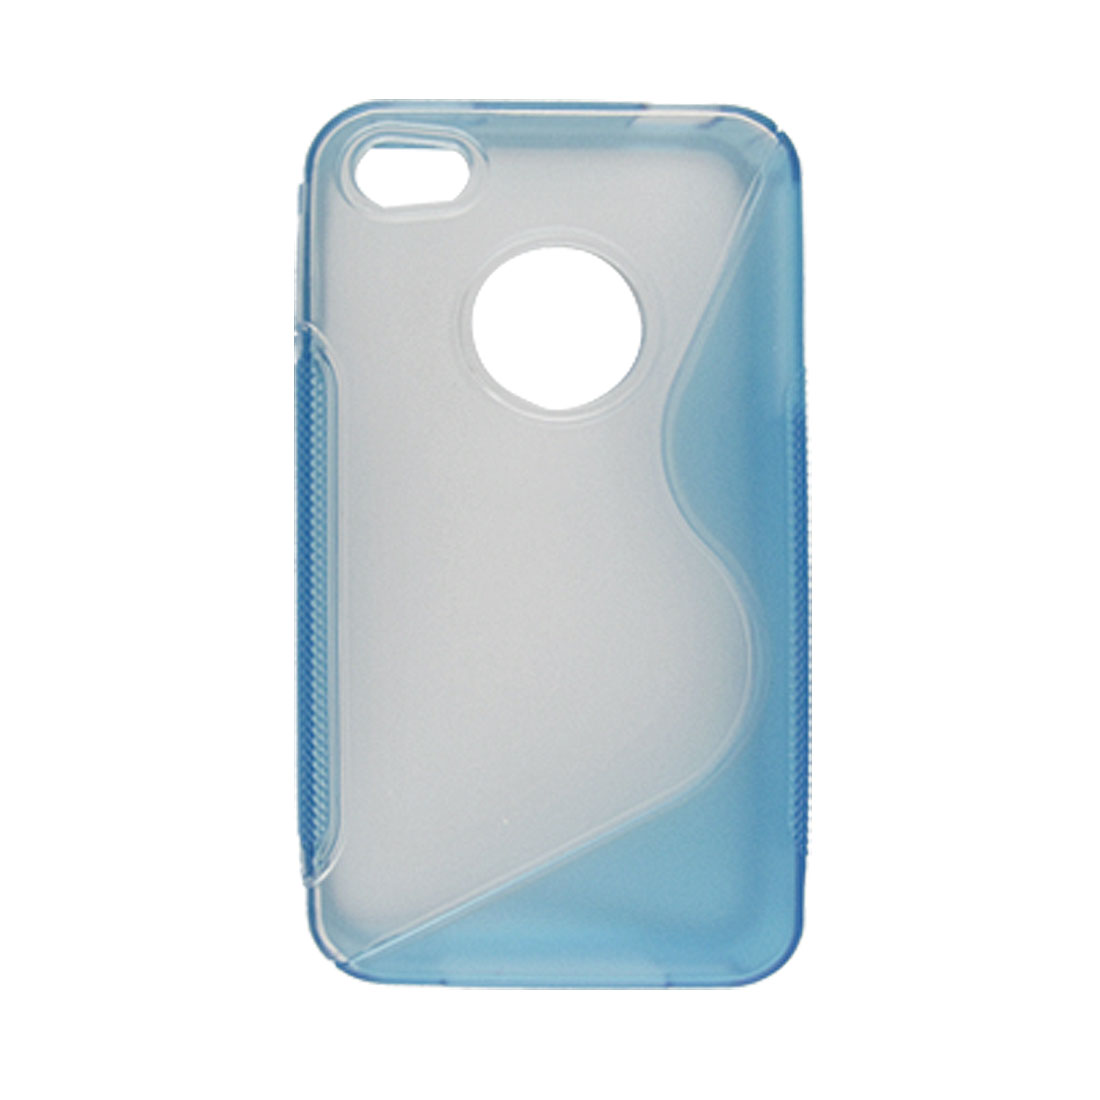 For iPhone 4 4G Skyblue and Clear Plastic Case Anti-glare